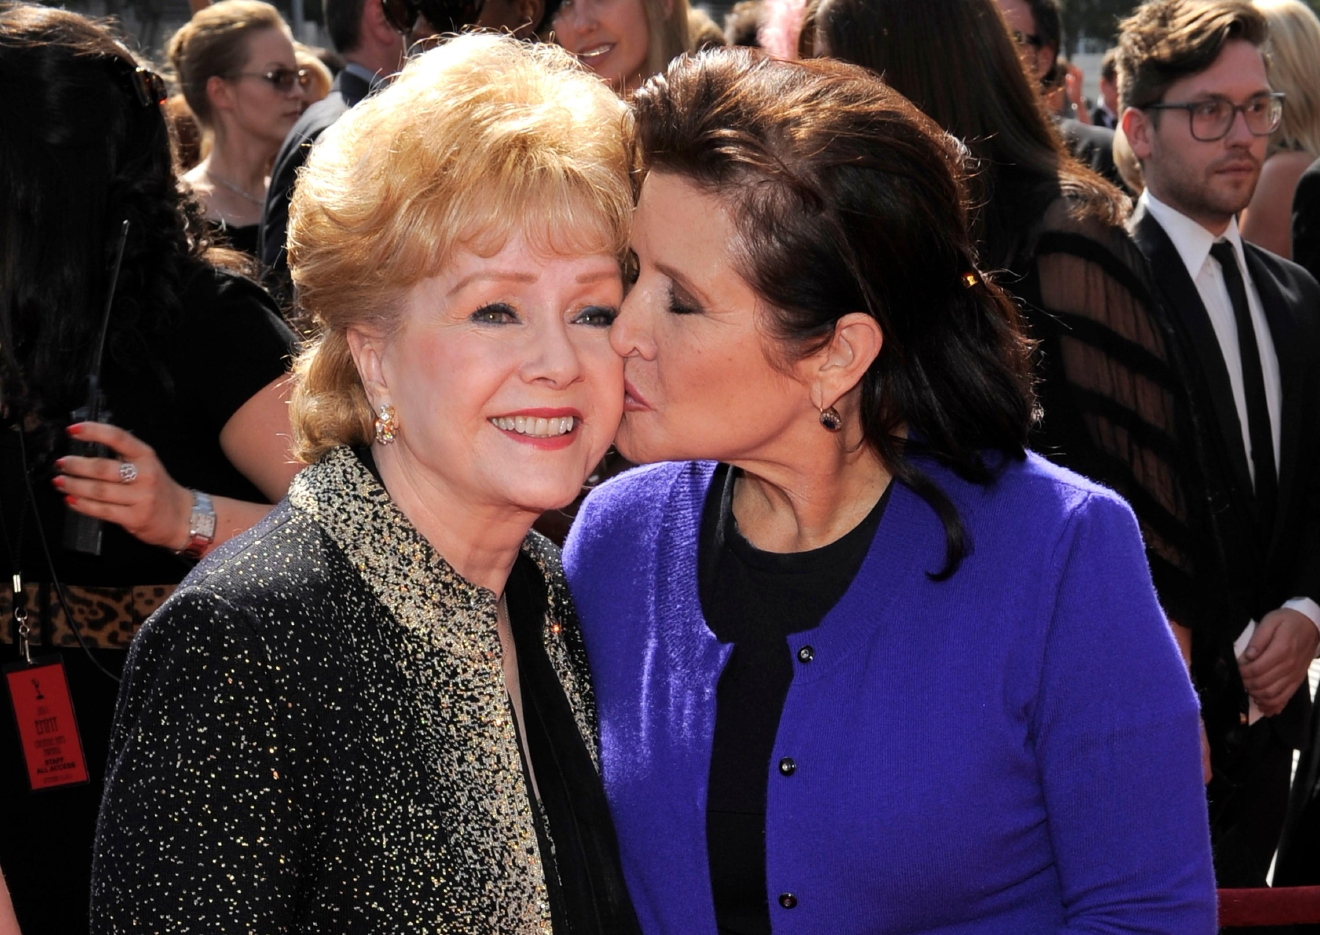 FILE- In this Sept. 10, 2011, file photo, Debbie Reynolds, left, and Carrie Fisher arrive at the Primetime Creative Arts Emmy Awards in Los Angeles. (AP Photo/Chris Pizzello, File)